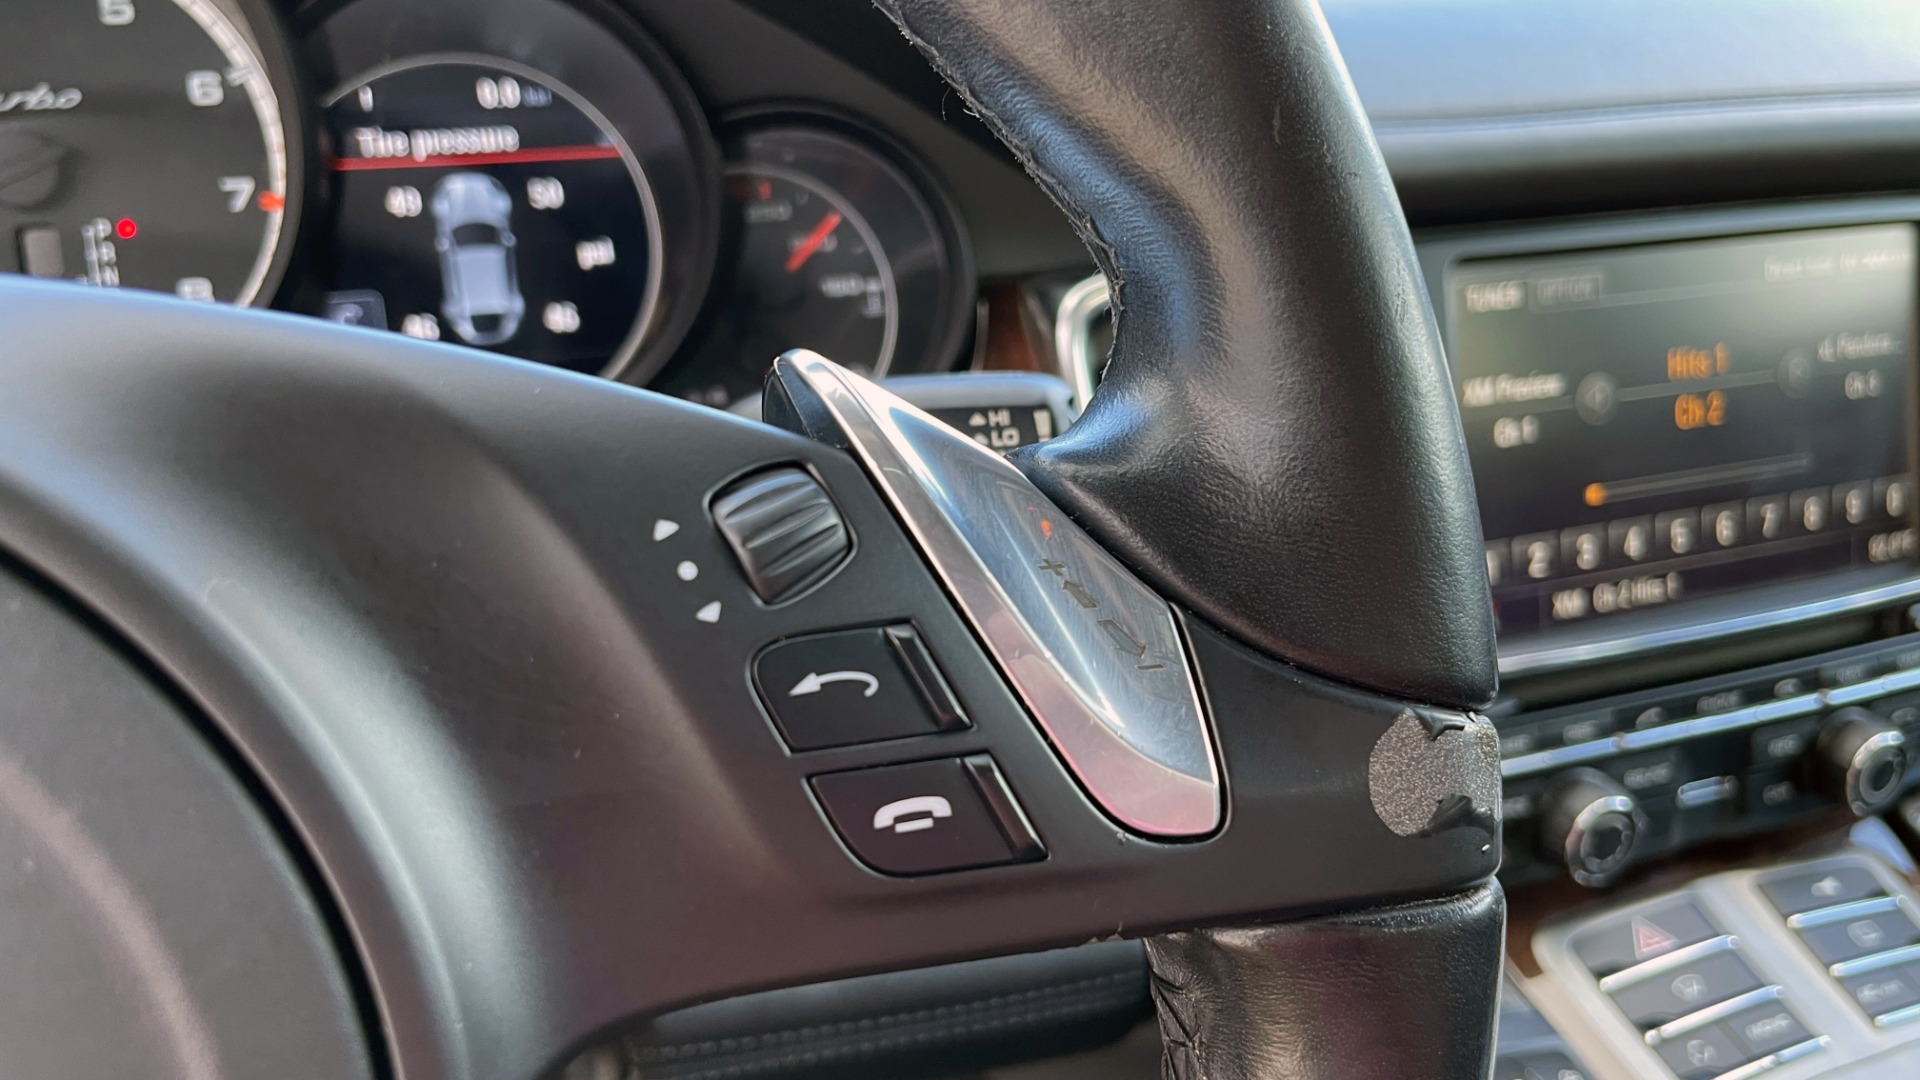 Used 2010 Porsche PANAMERA 4DR HB TURBO / SPORT CHRONO / BURMESTER / AUTO CLIMATE CONTROL for sale $40,995 at Formula Imports in Charlotte NC 28227 40